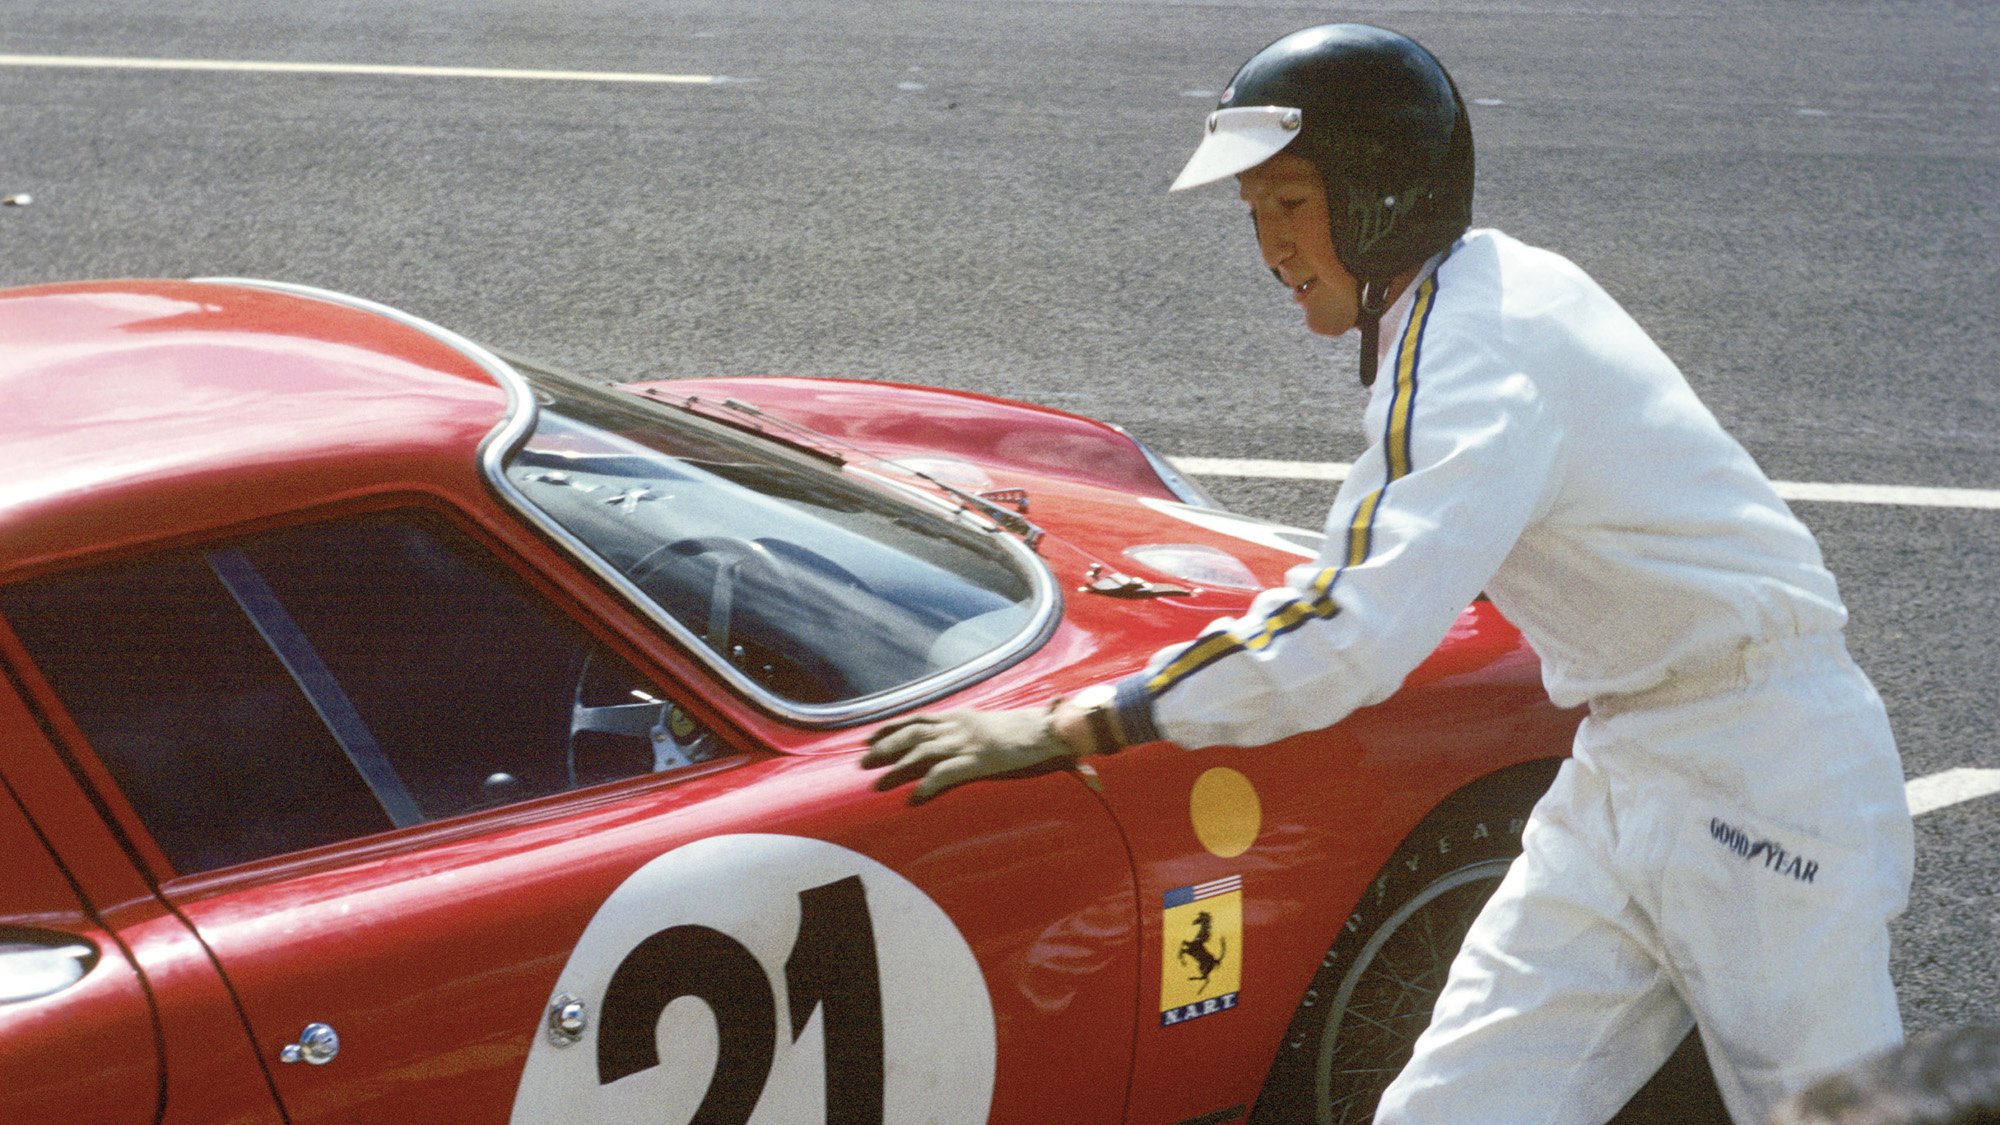 Jochen Rindt walks towards the no21 Ferrari in the pits during the 1965 Le Mans 24 Hours